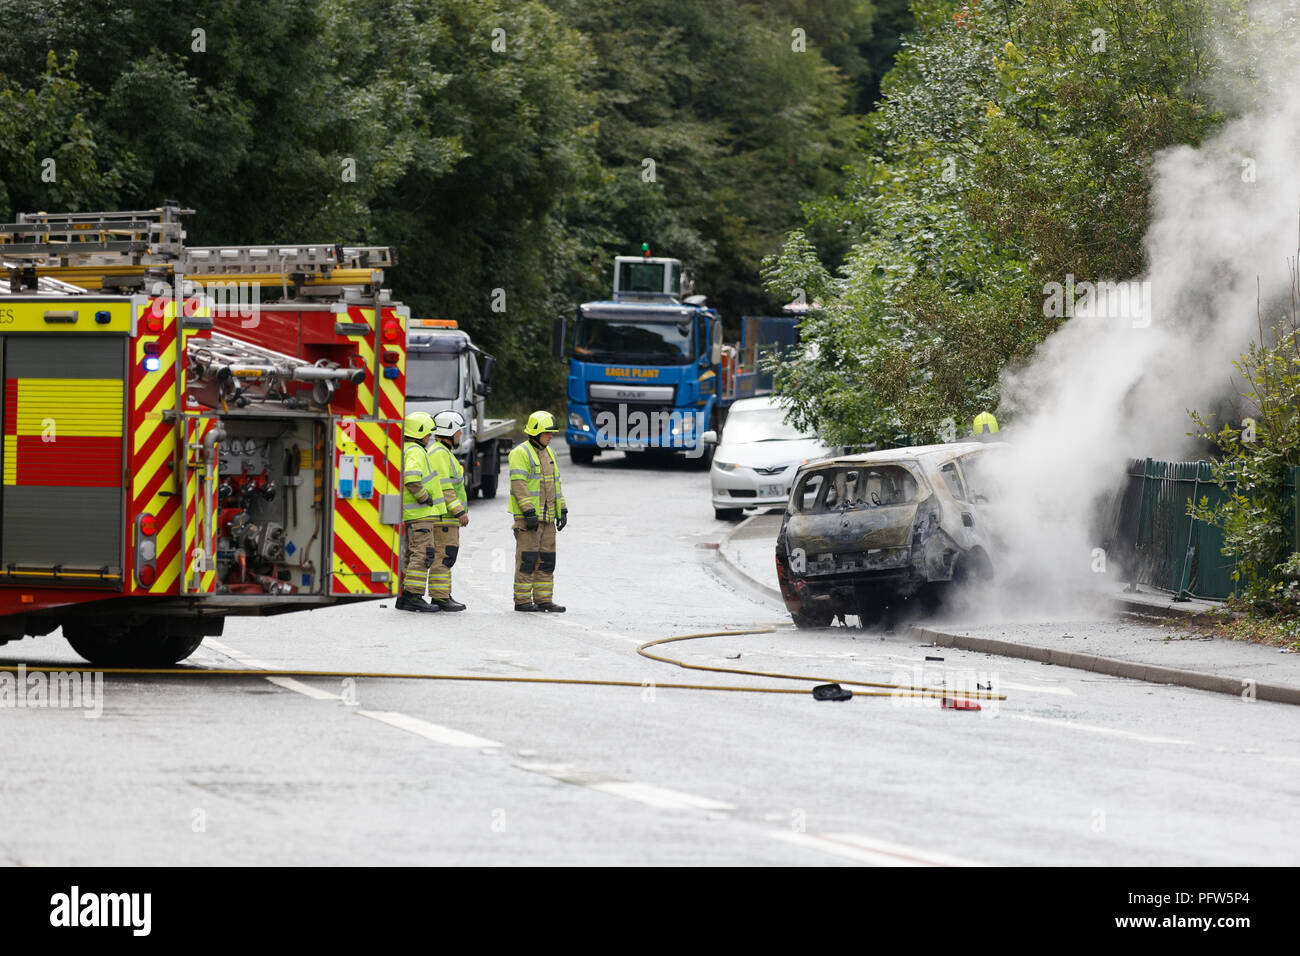 Fire service personnel attend a fire of a red Renault car  in Crumlin, south Wales, UK - Stock Image